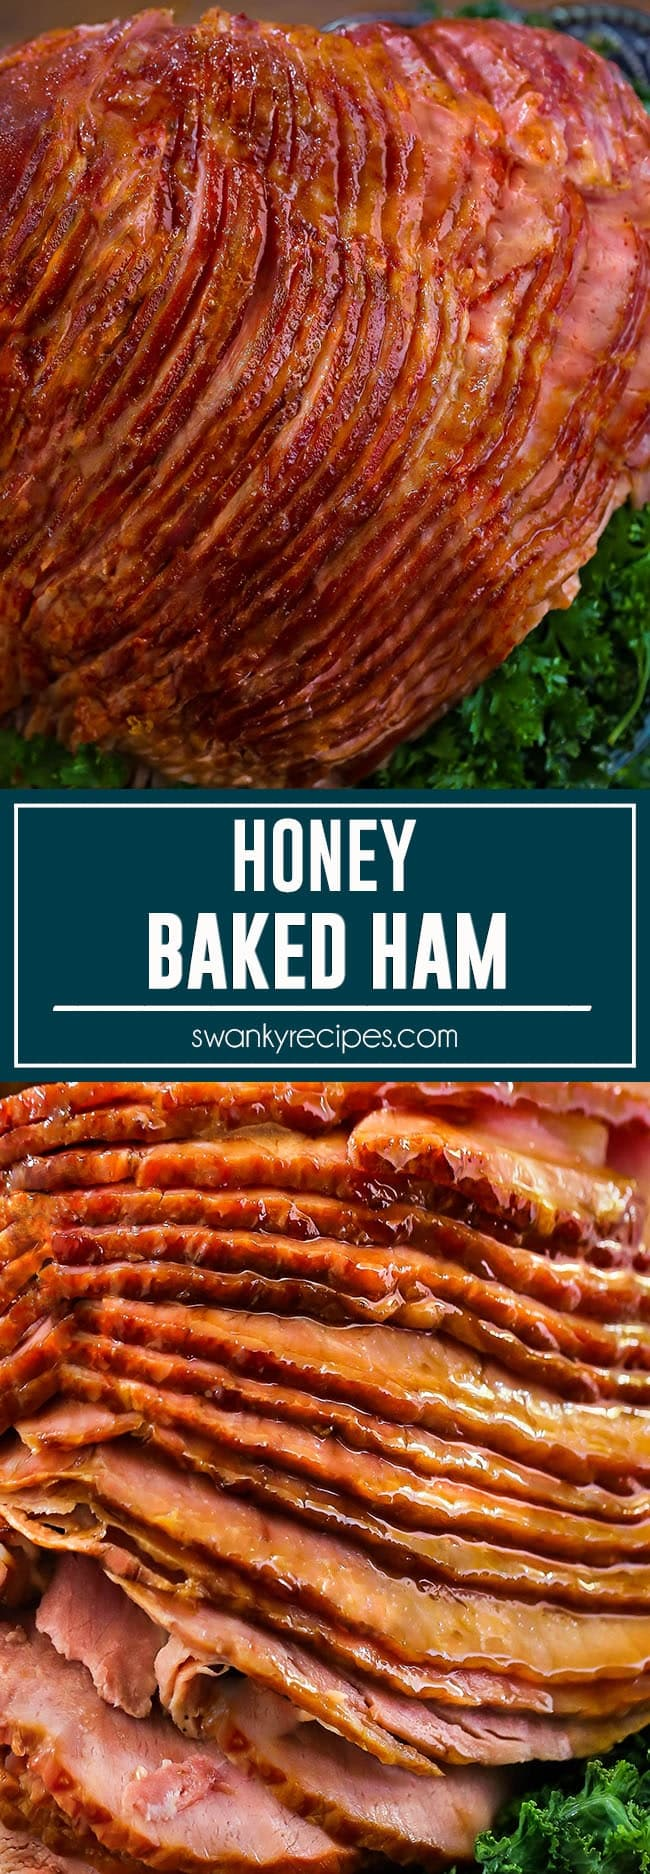 Honey Baked Ham with a sweet honey glaze.